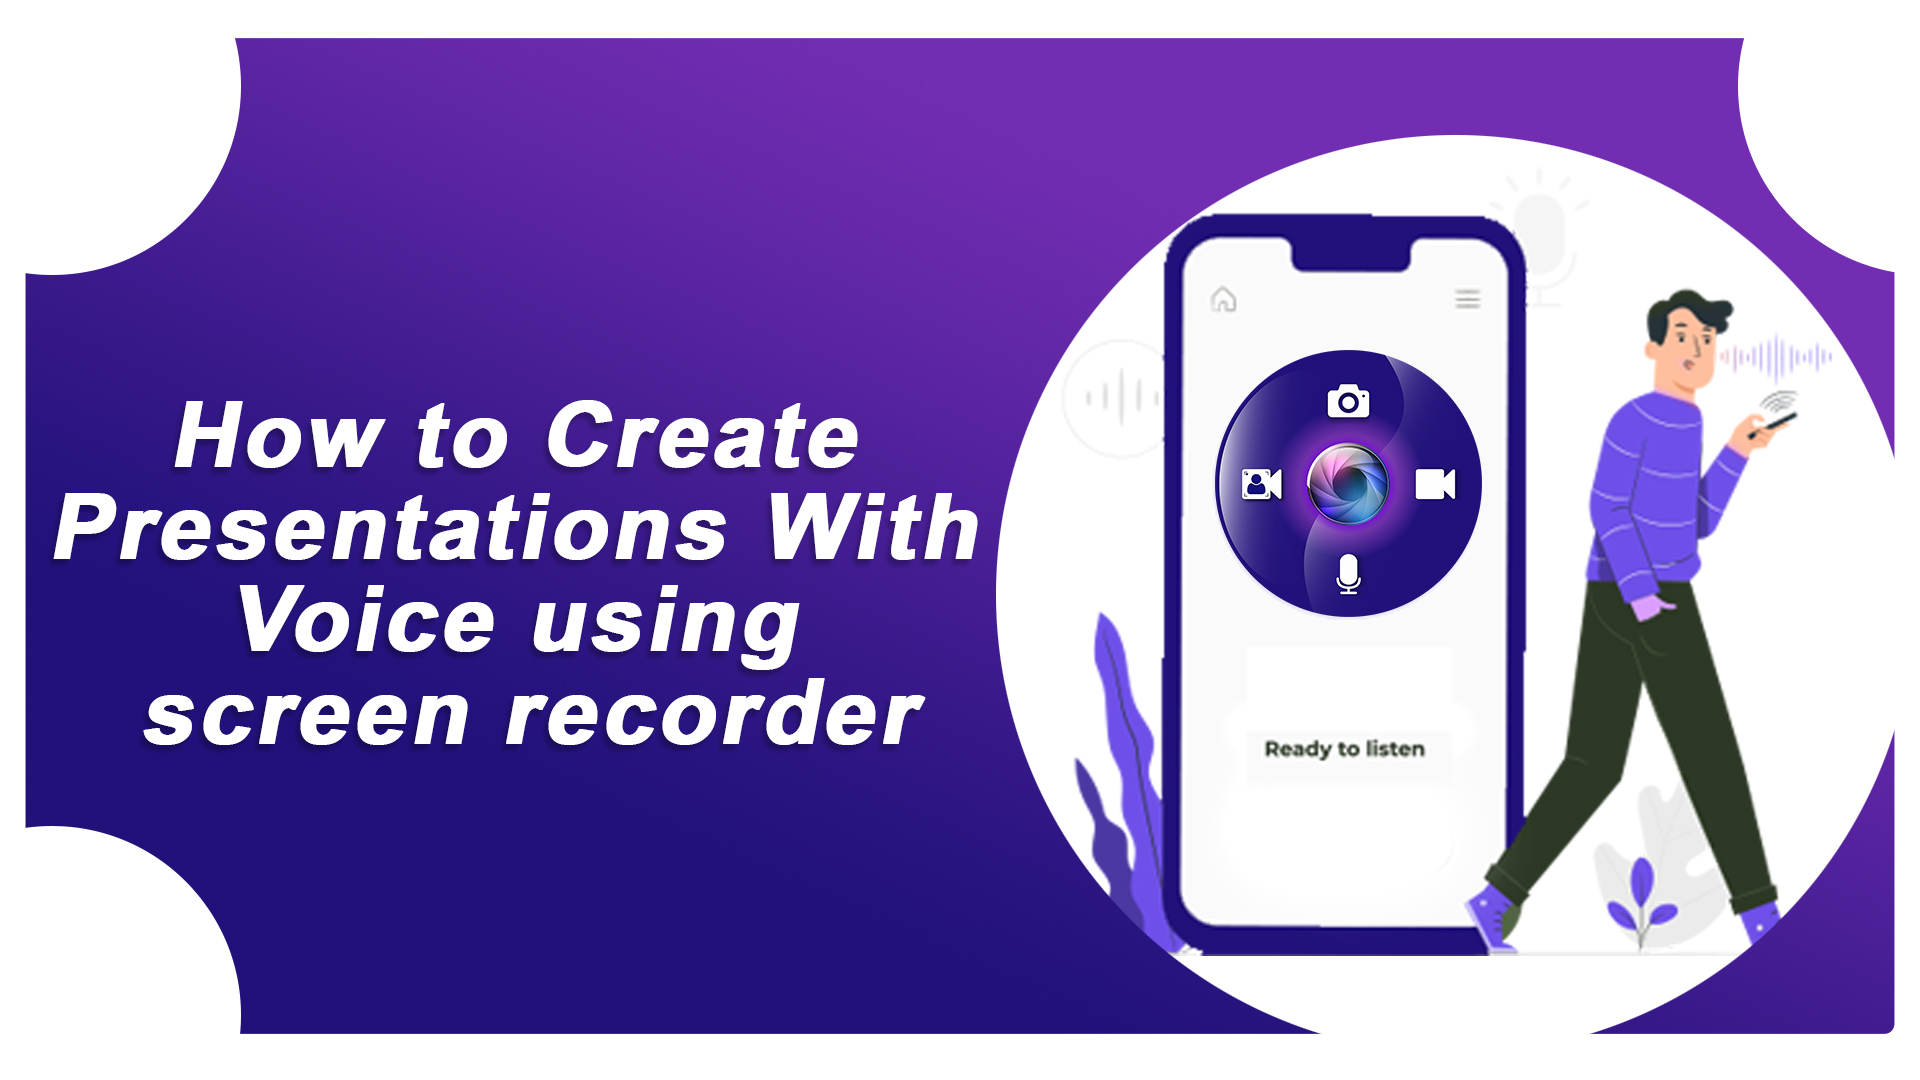 How To Create Presentations With Voice Using Screen Recorder